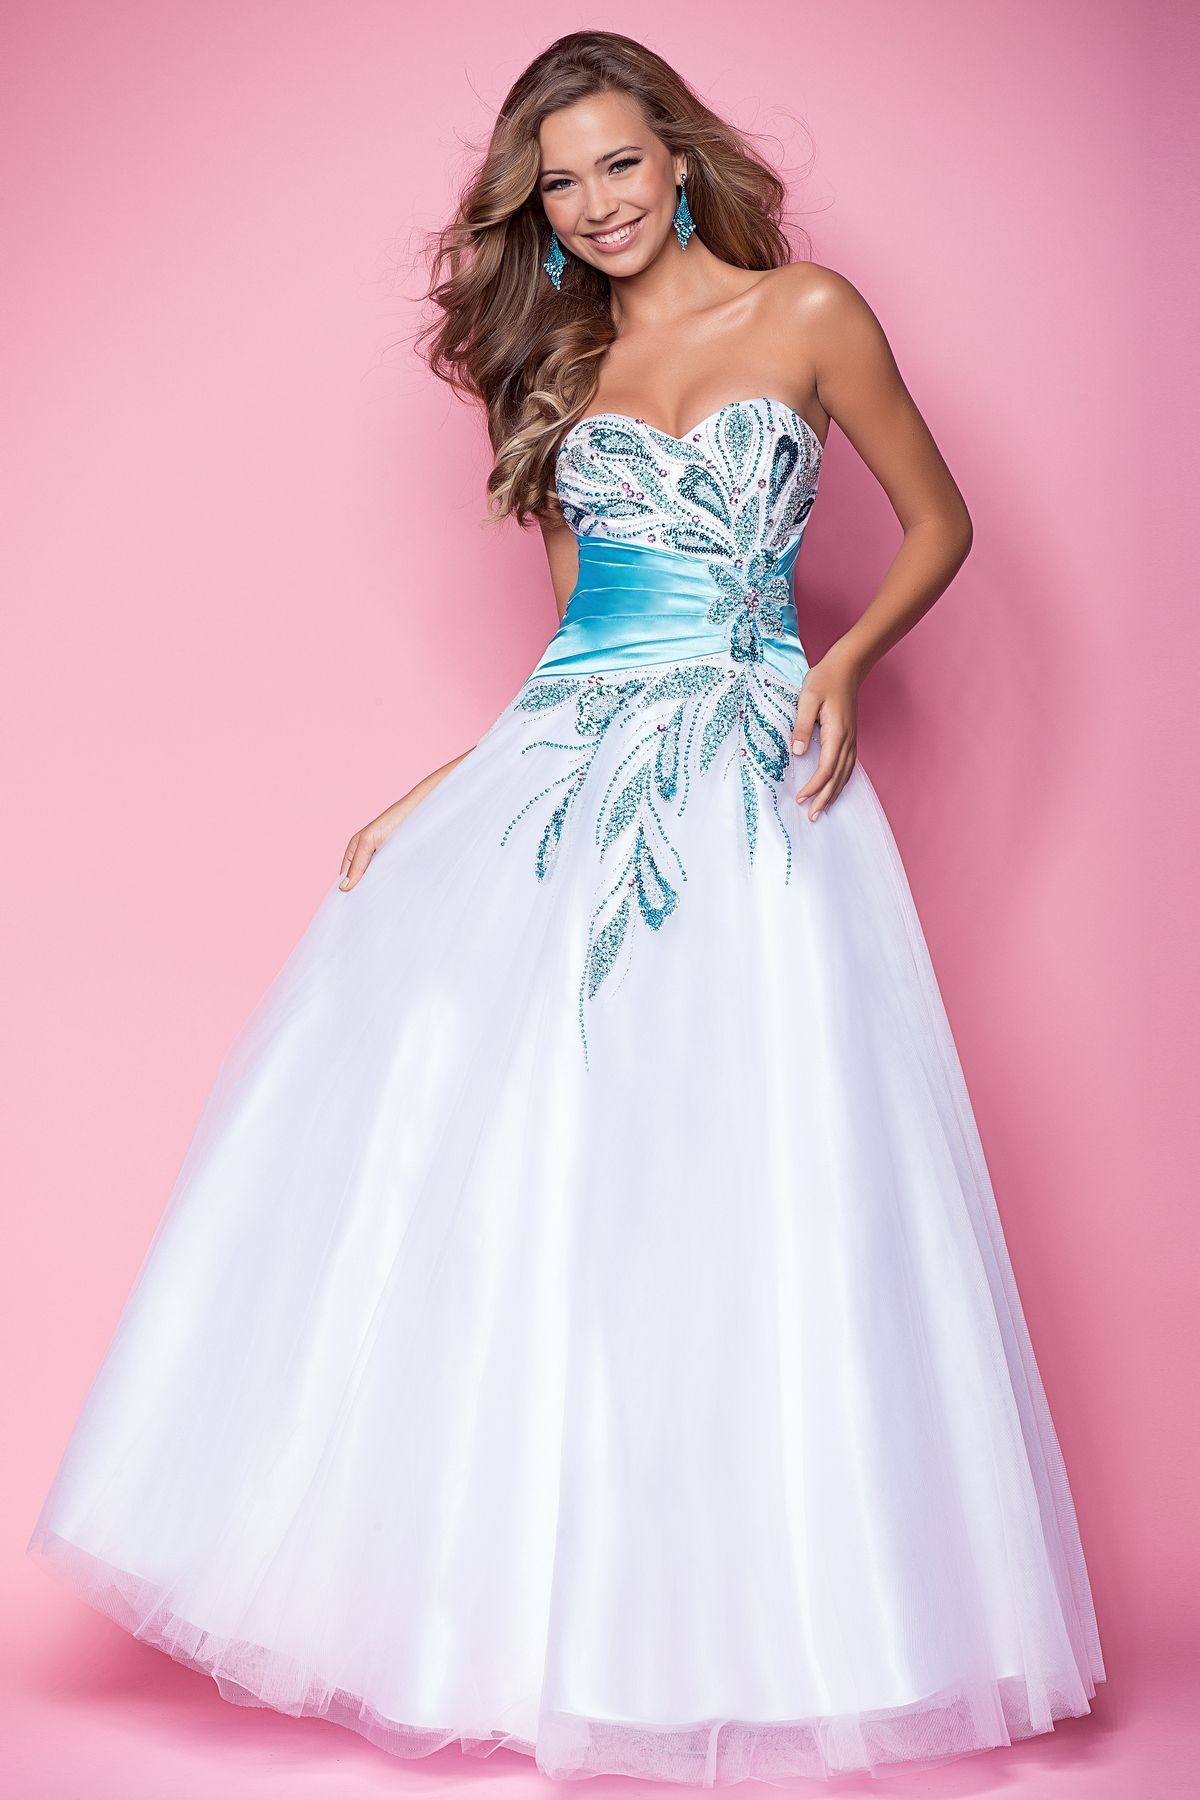 Beaded floral elegance in a sexy prom dress! Delicate pastel stones ...